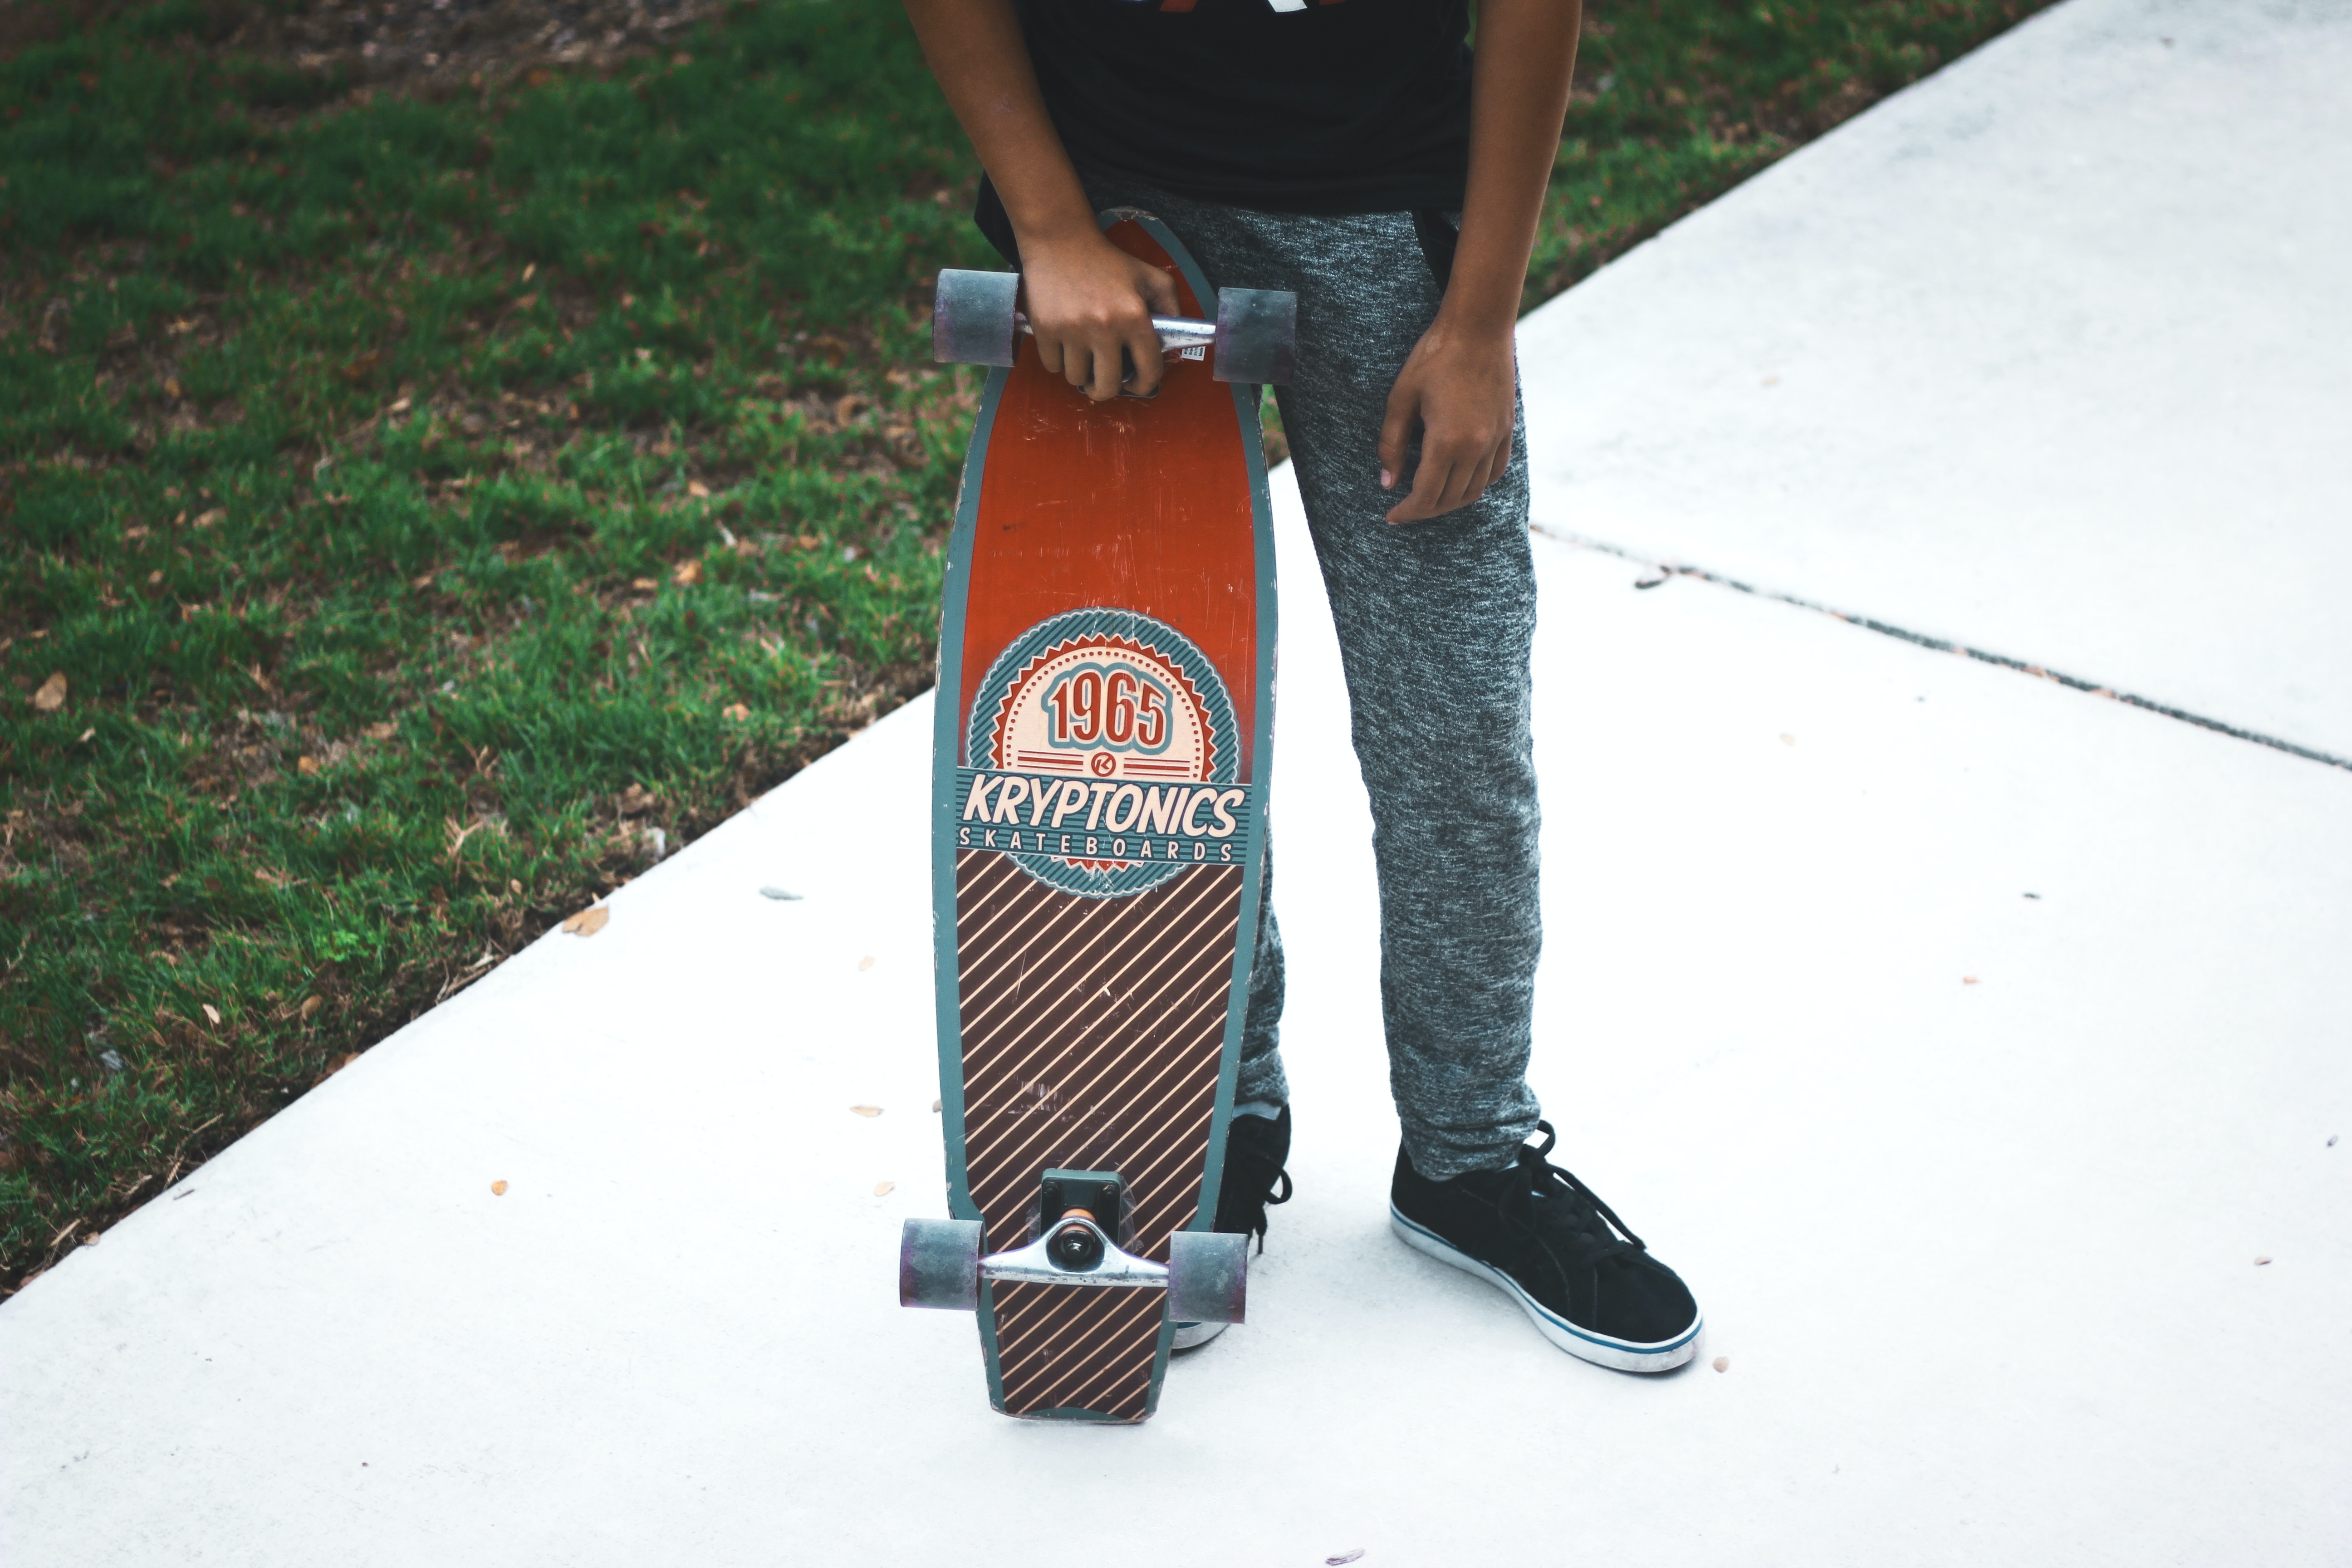 person holding red and gray Kryptonics cruiserboard standing on white tiles